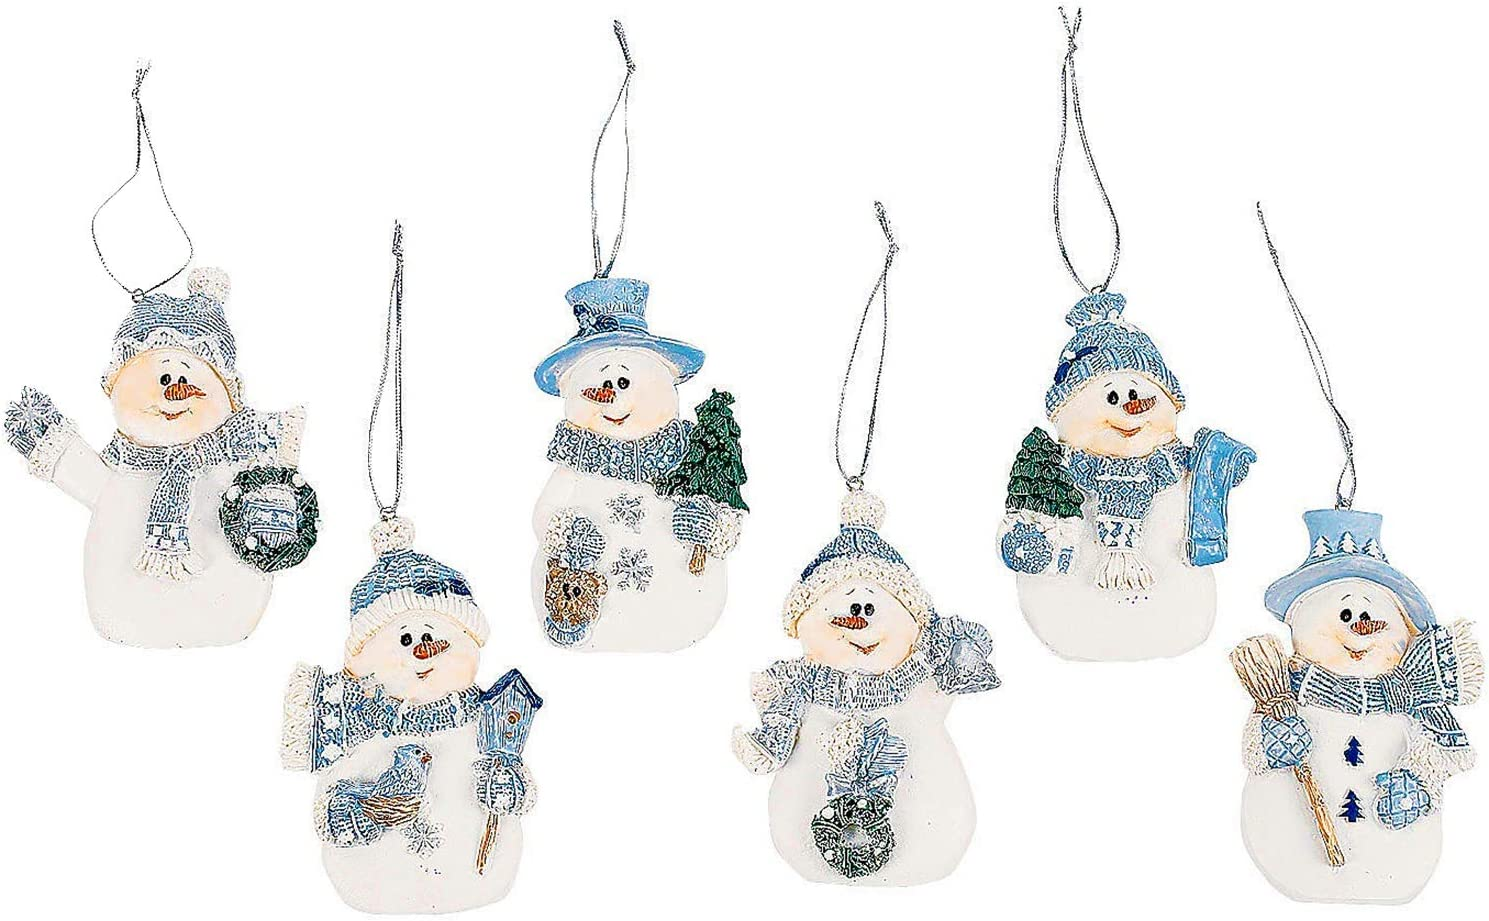 4E's Novelty Resin Blue Snowman Christmas Ornaments for Christmas Tree Decorations (12 Pack) White & Blue Hanging Snowman, Xmas Tree Décor Bundled with Stickers